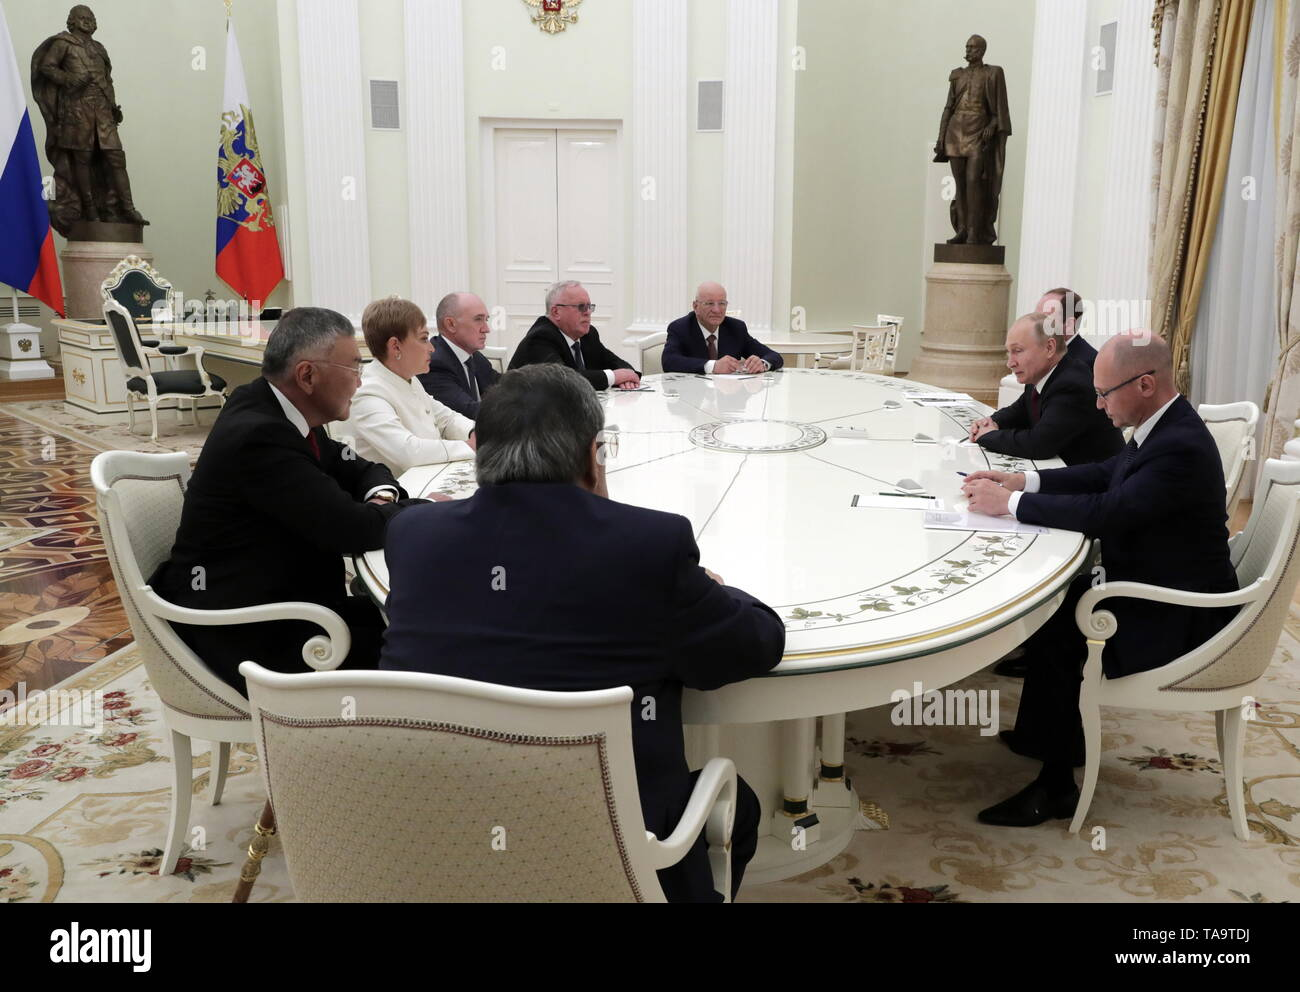 Moscow, Russia. 23rd May, 2019. MOSCOW, RUSSIA - MAY 23, 2019: Russia's President Vladimir Putin (2nd R) during a meeting with former heads of Russian regions, at the Moscow Kremlin. Mikhail Metzel/TASS Credit: ITAR-TASS News Agency/Alamy Live News - Stock Image